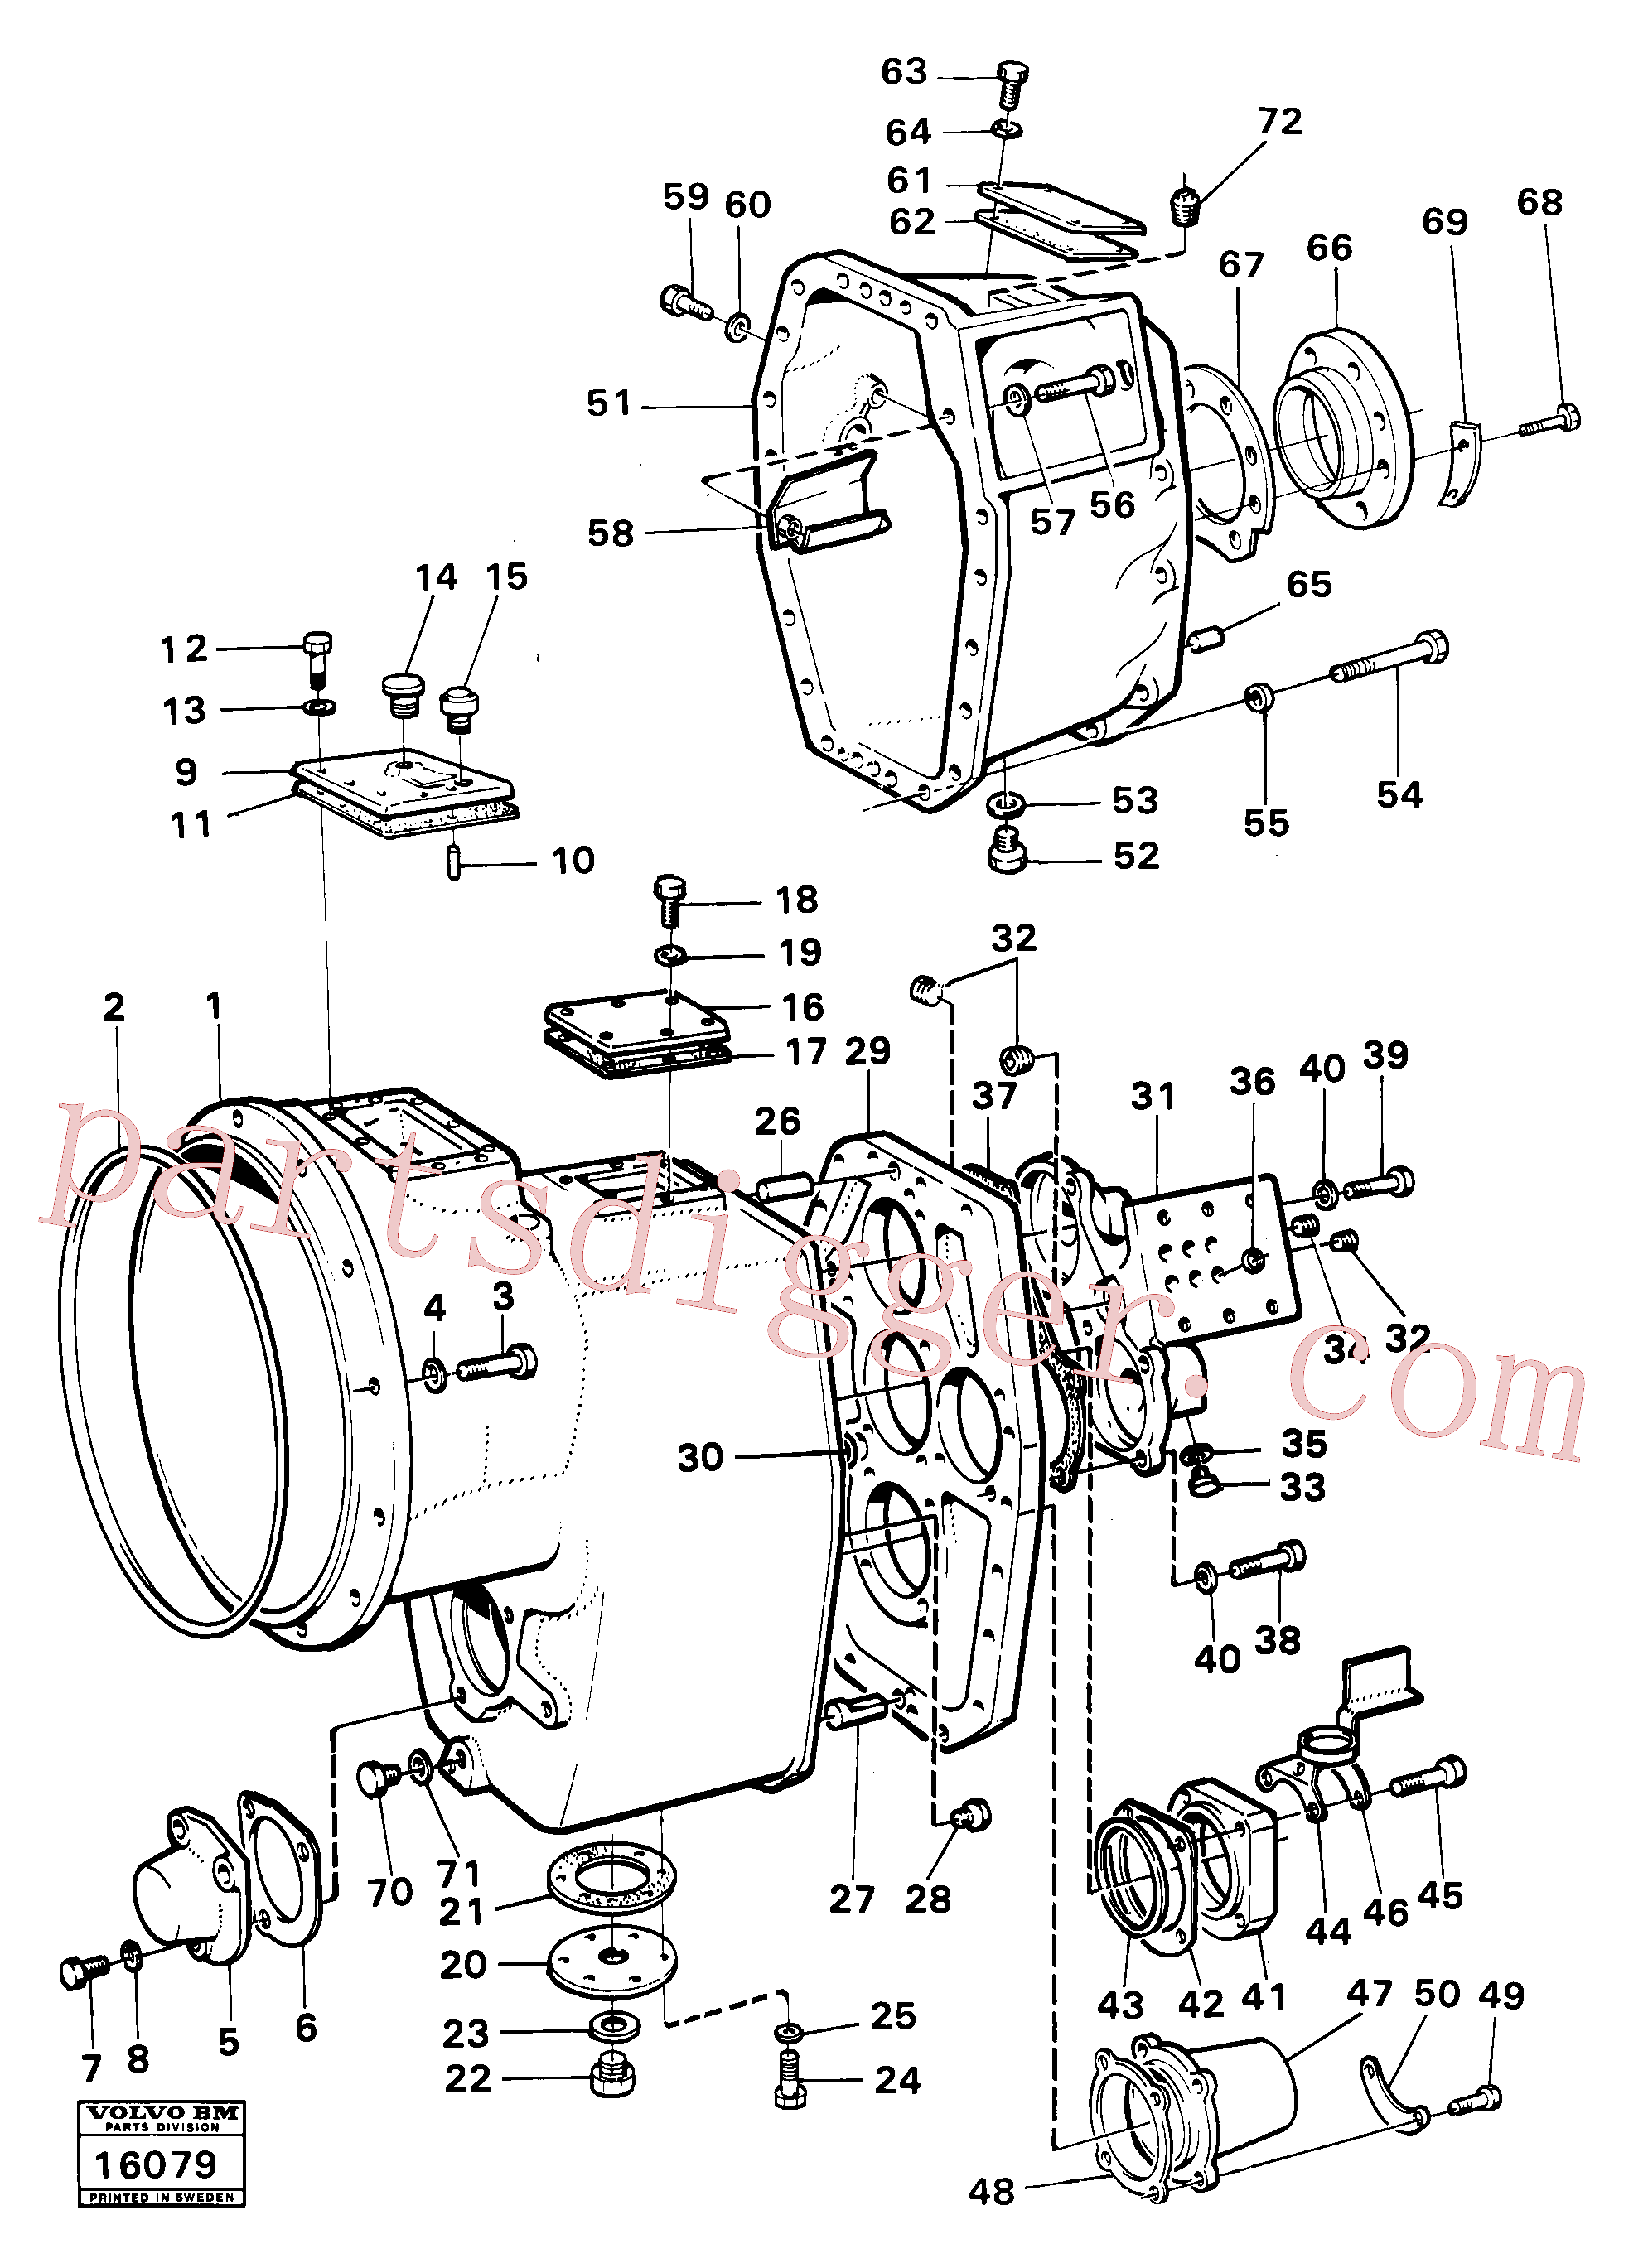 VOE940114 for Volvo Housing,covers and boltings(16079 assembly)